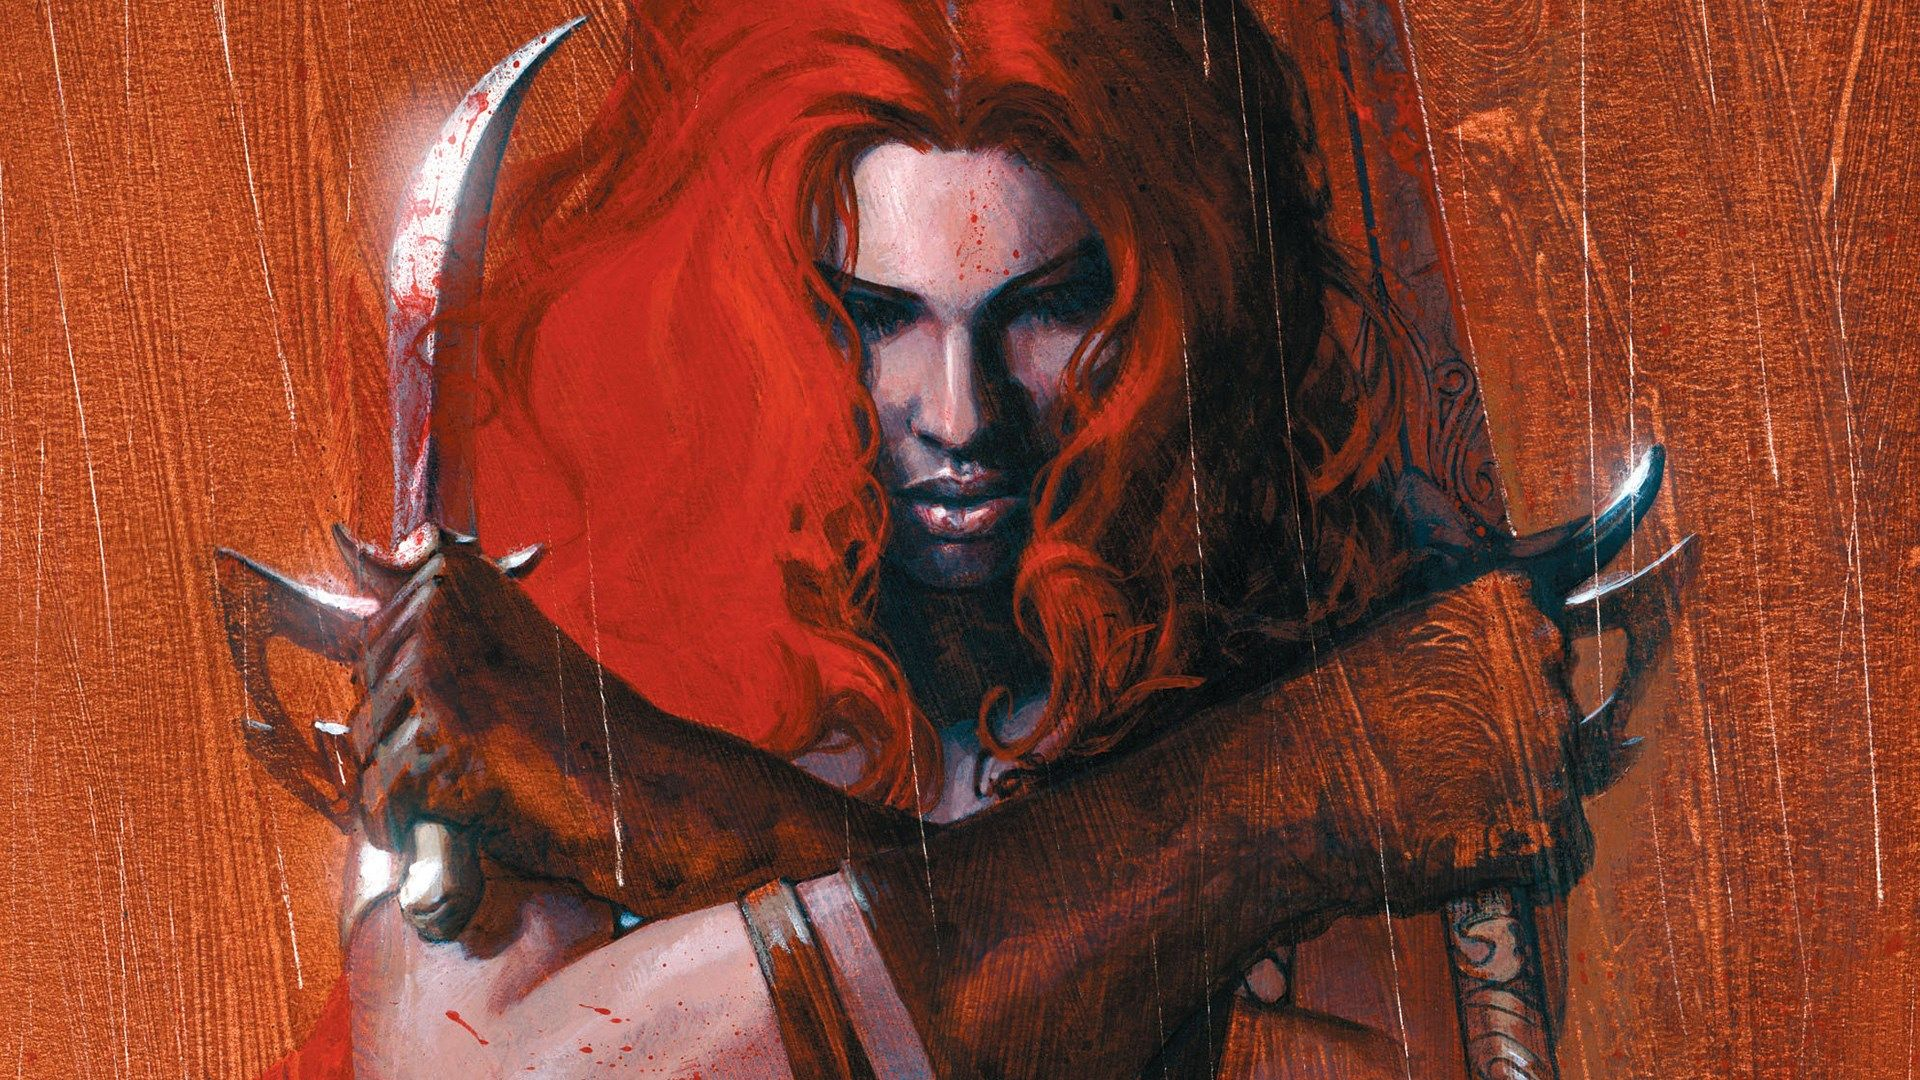 Red Sonja 1080p Windows Red Sonja Fantasy Portraits Sword And Sorcery